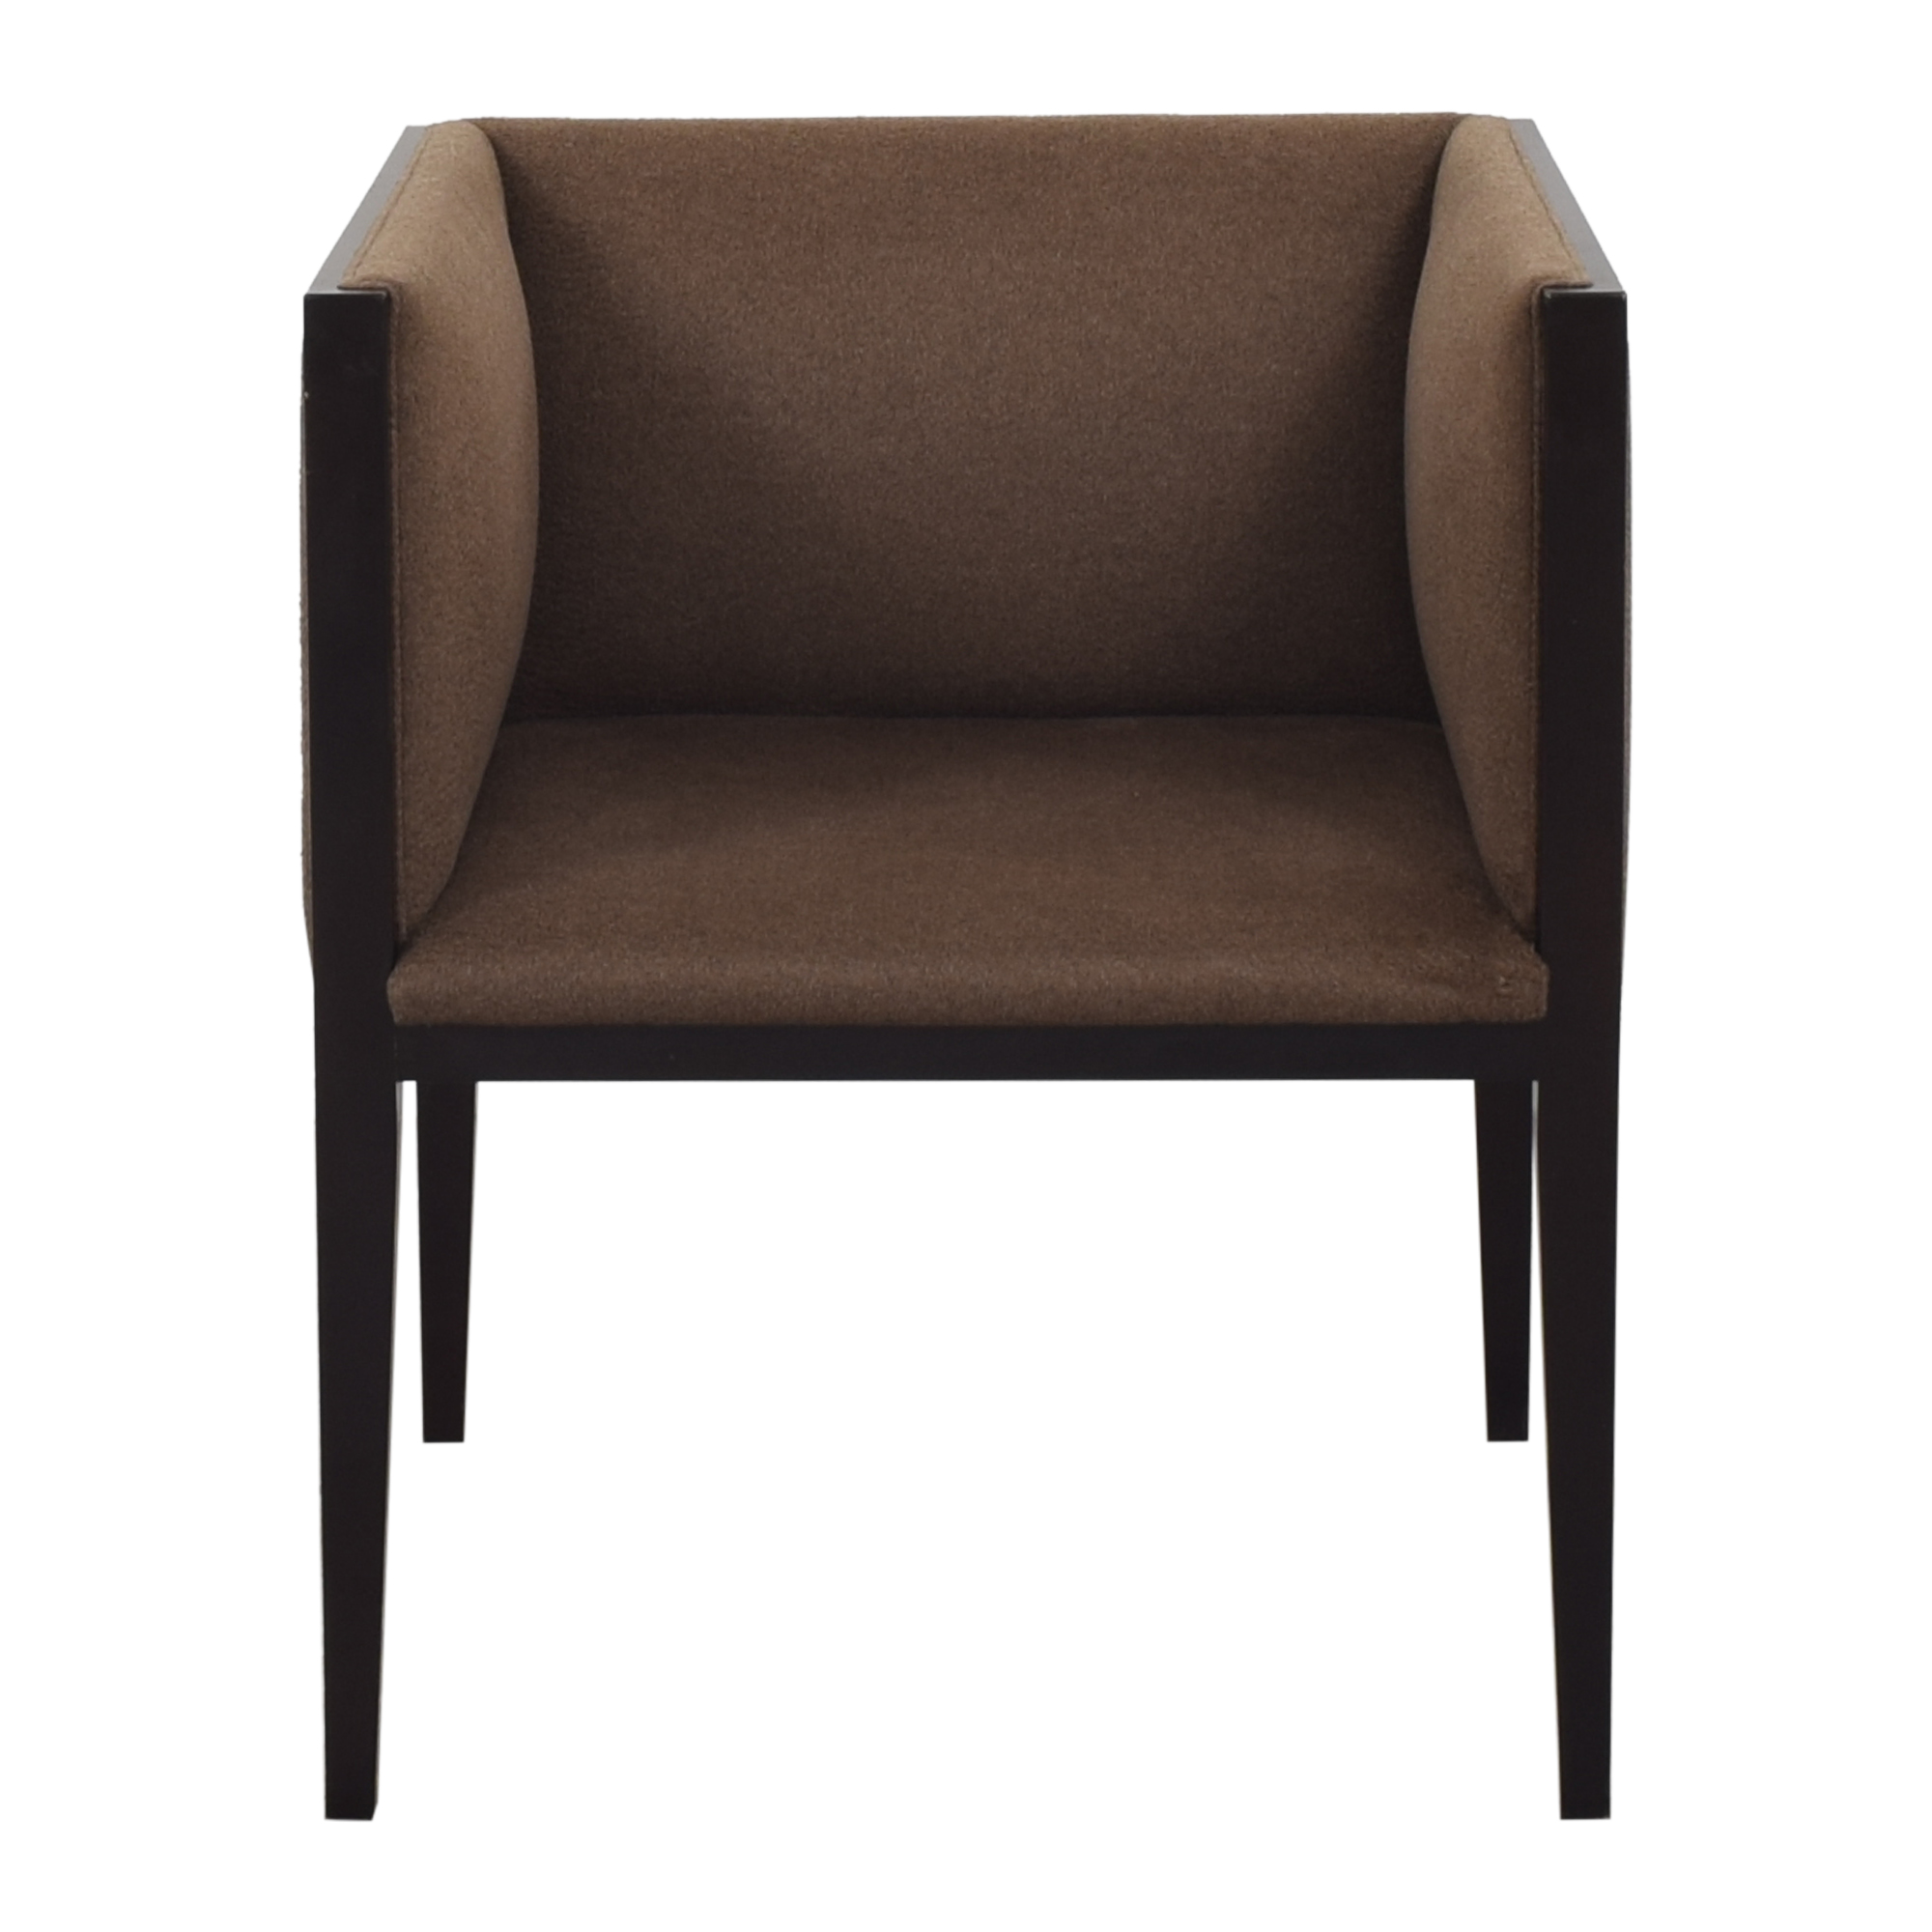 Hudson Furniture & Bedding Hudson Furniture & Bedding Tuxedo Accent Chair price